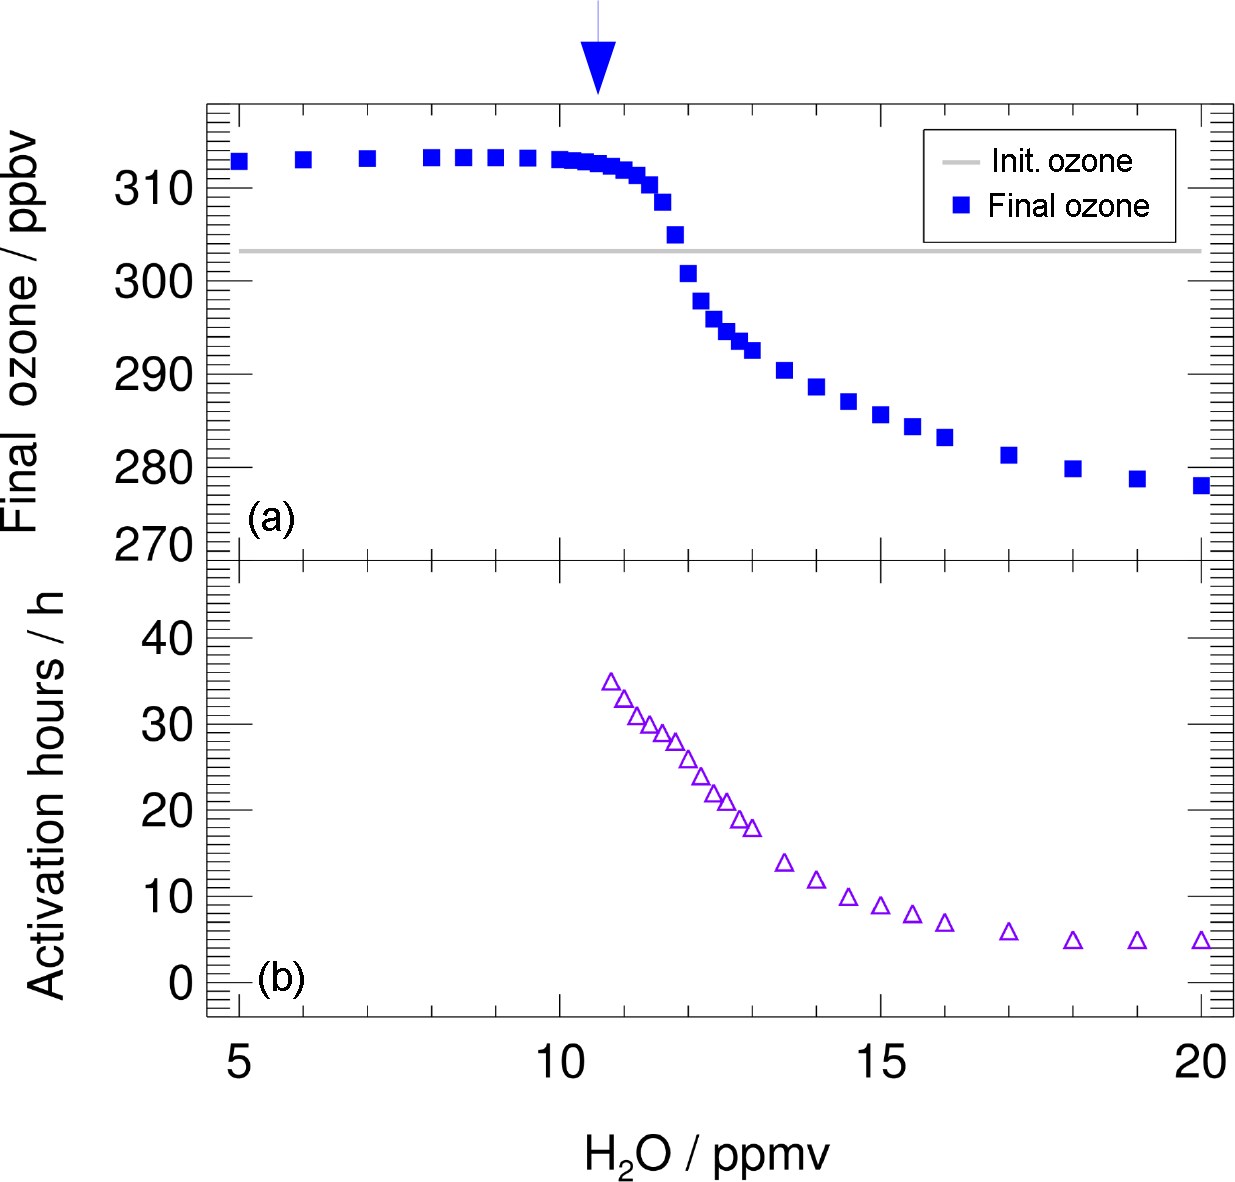 ACP - Mechanism of ozone loss under enhanced water vapour